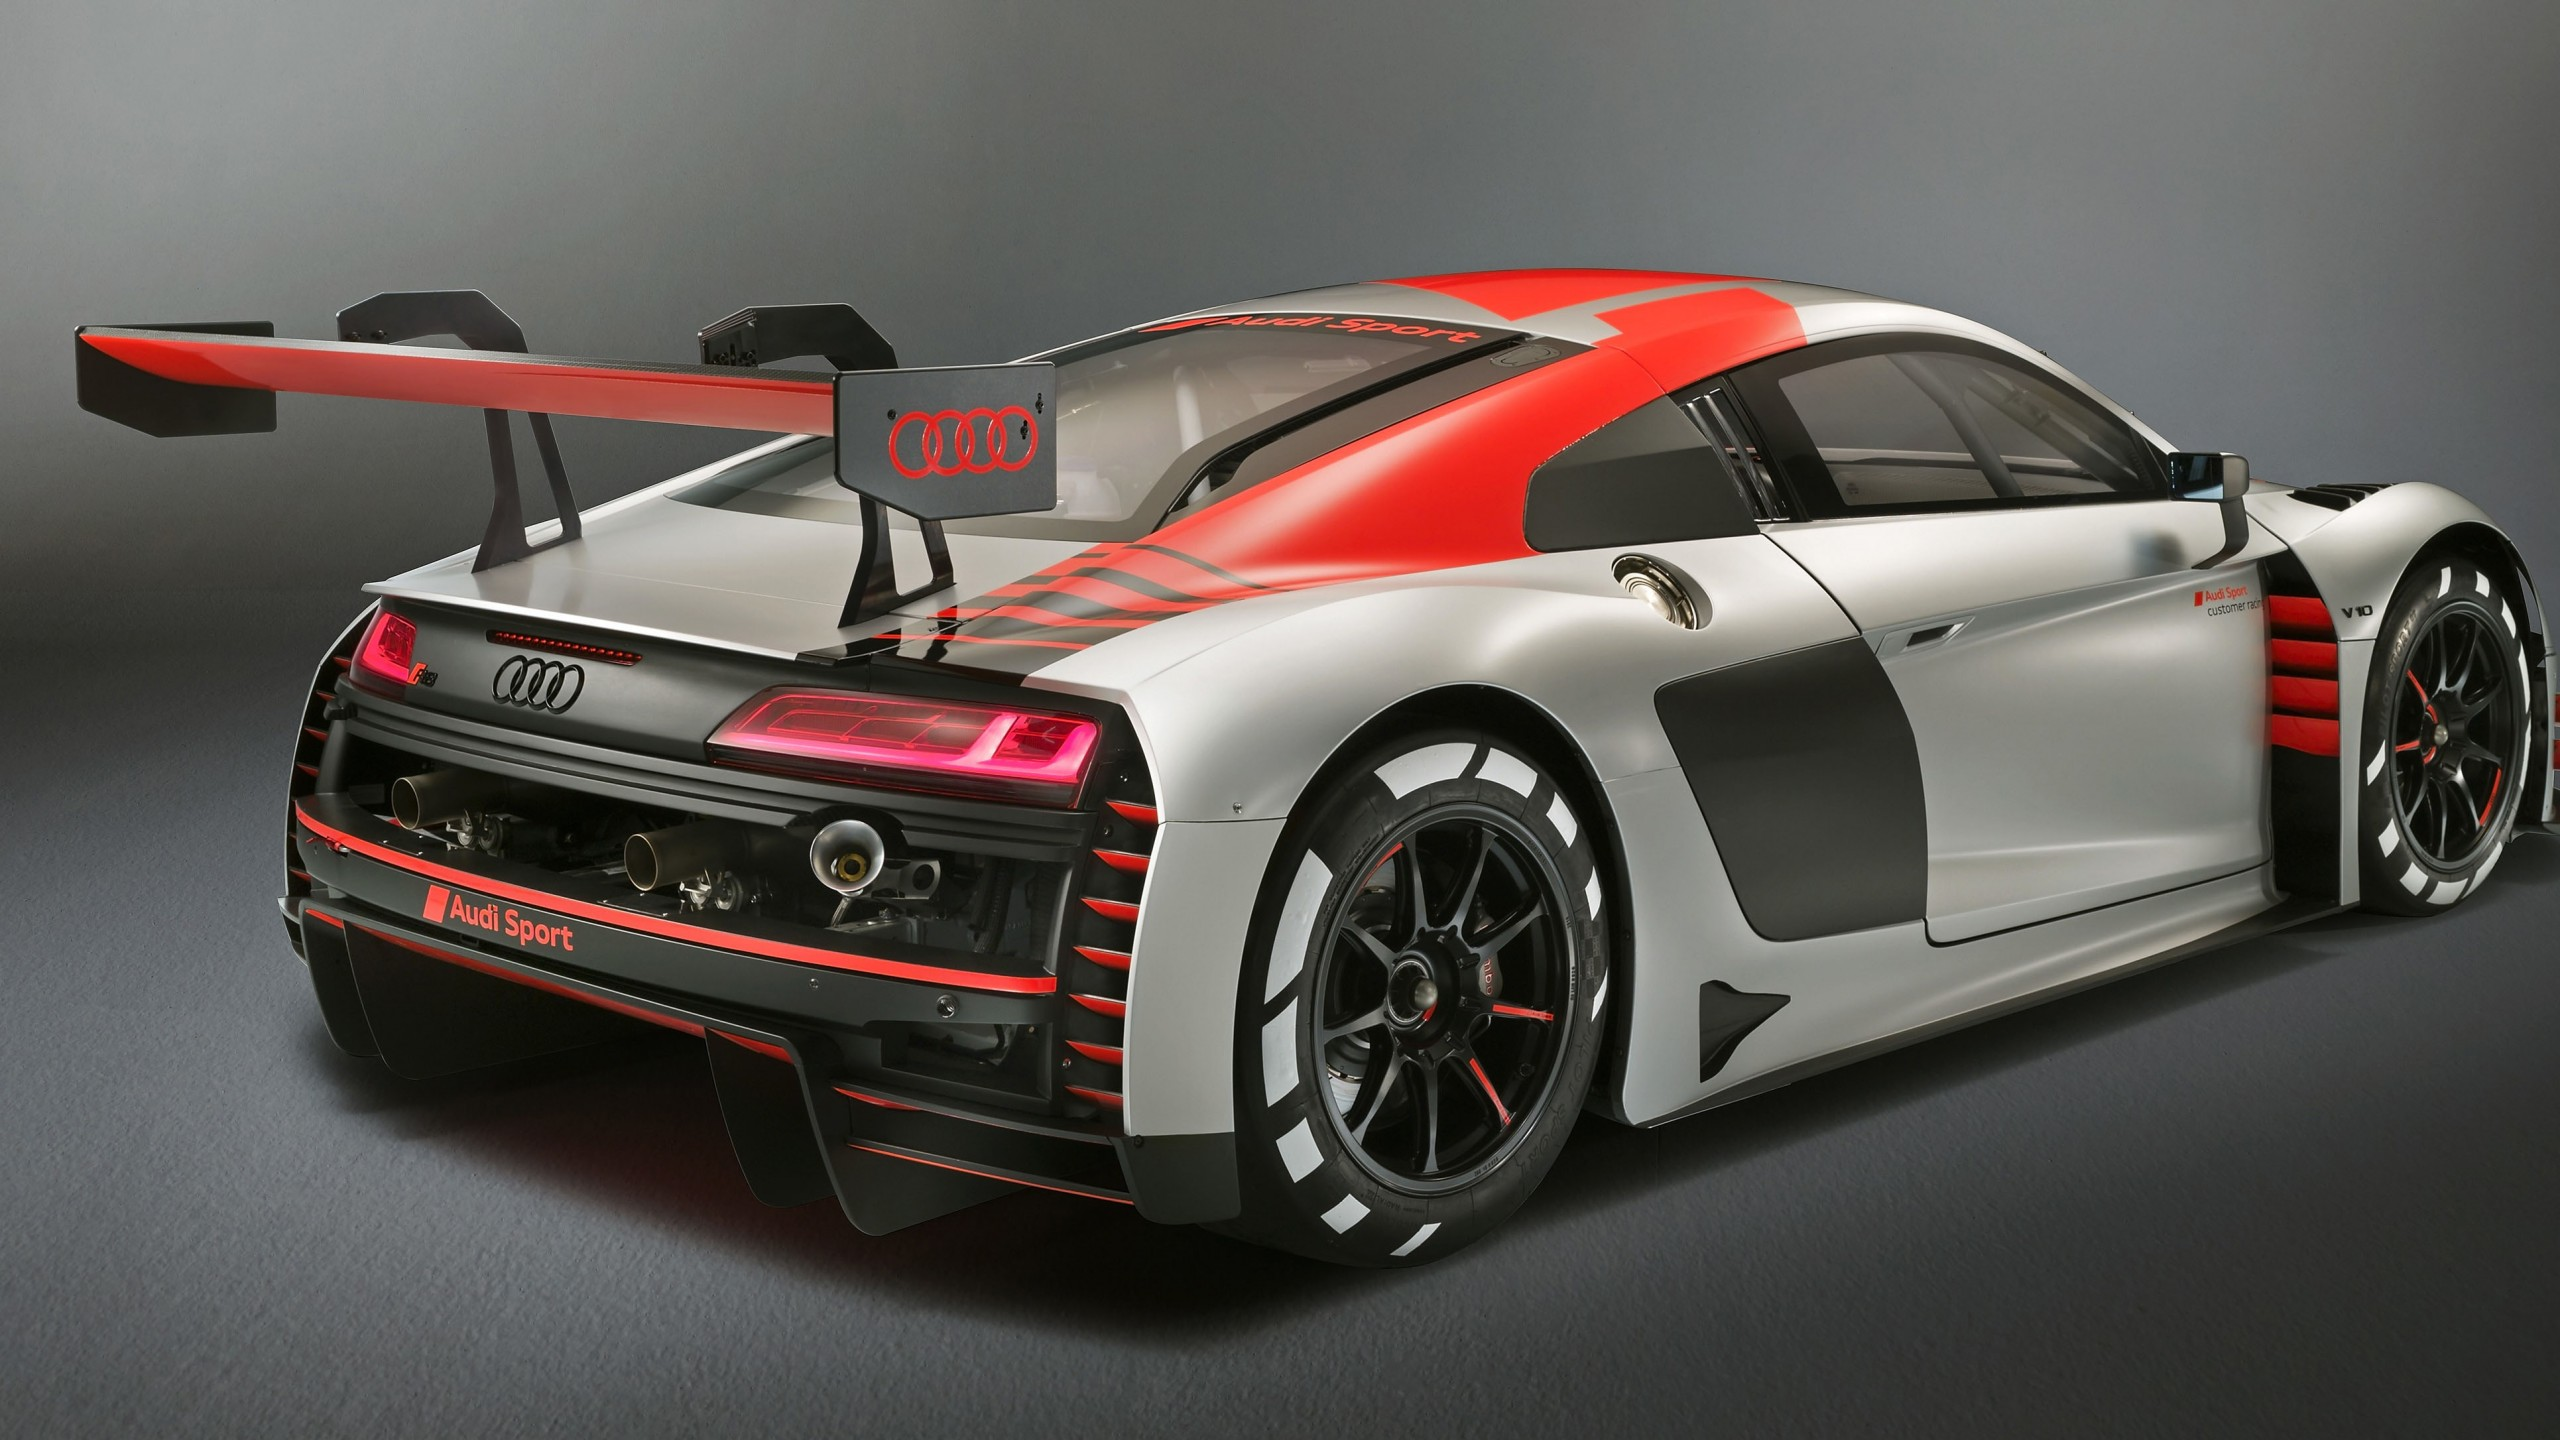 Wallpaper Audi R8 Lms Gt3 2019 Cars Supercar 4k Cars